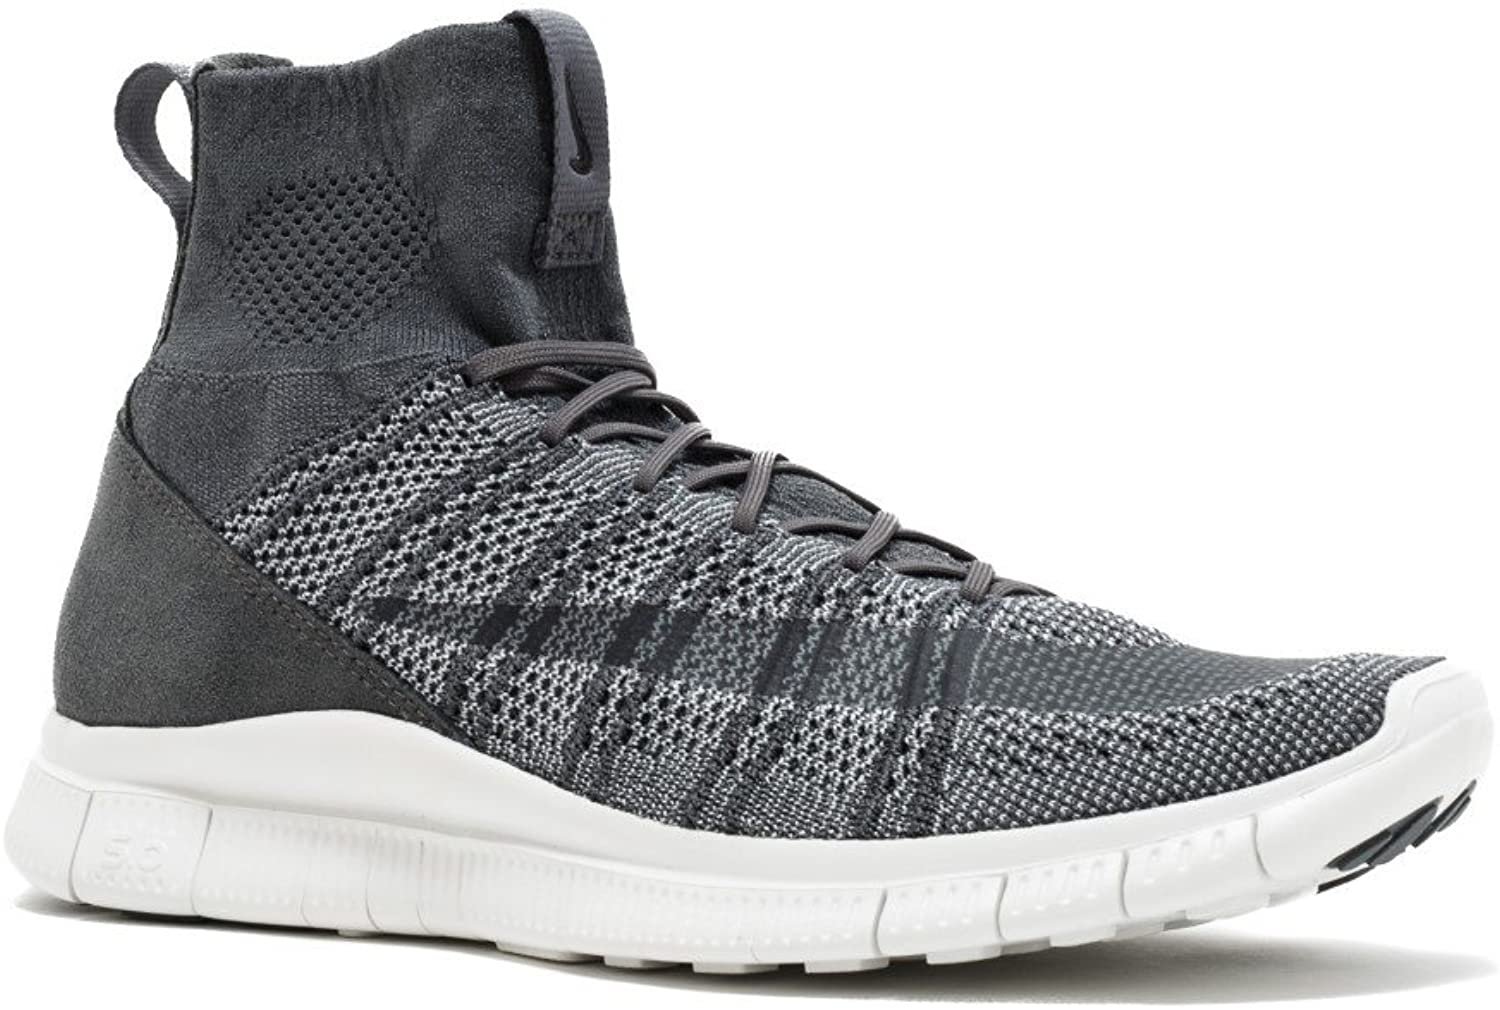 Nike Free Flyknit Mercurial Superfly Men's Sneaker